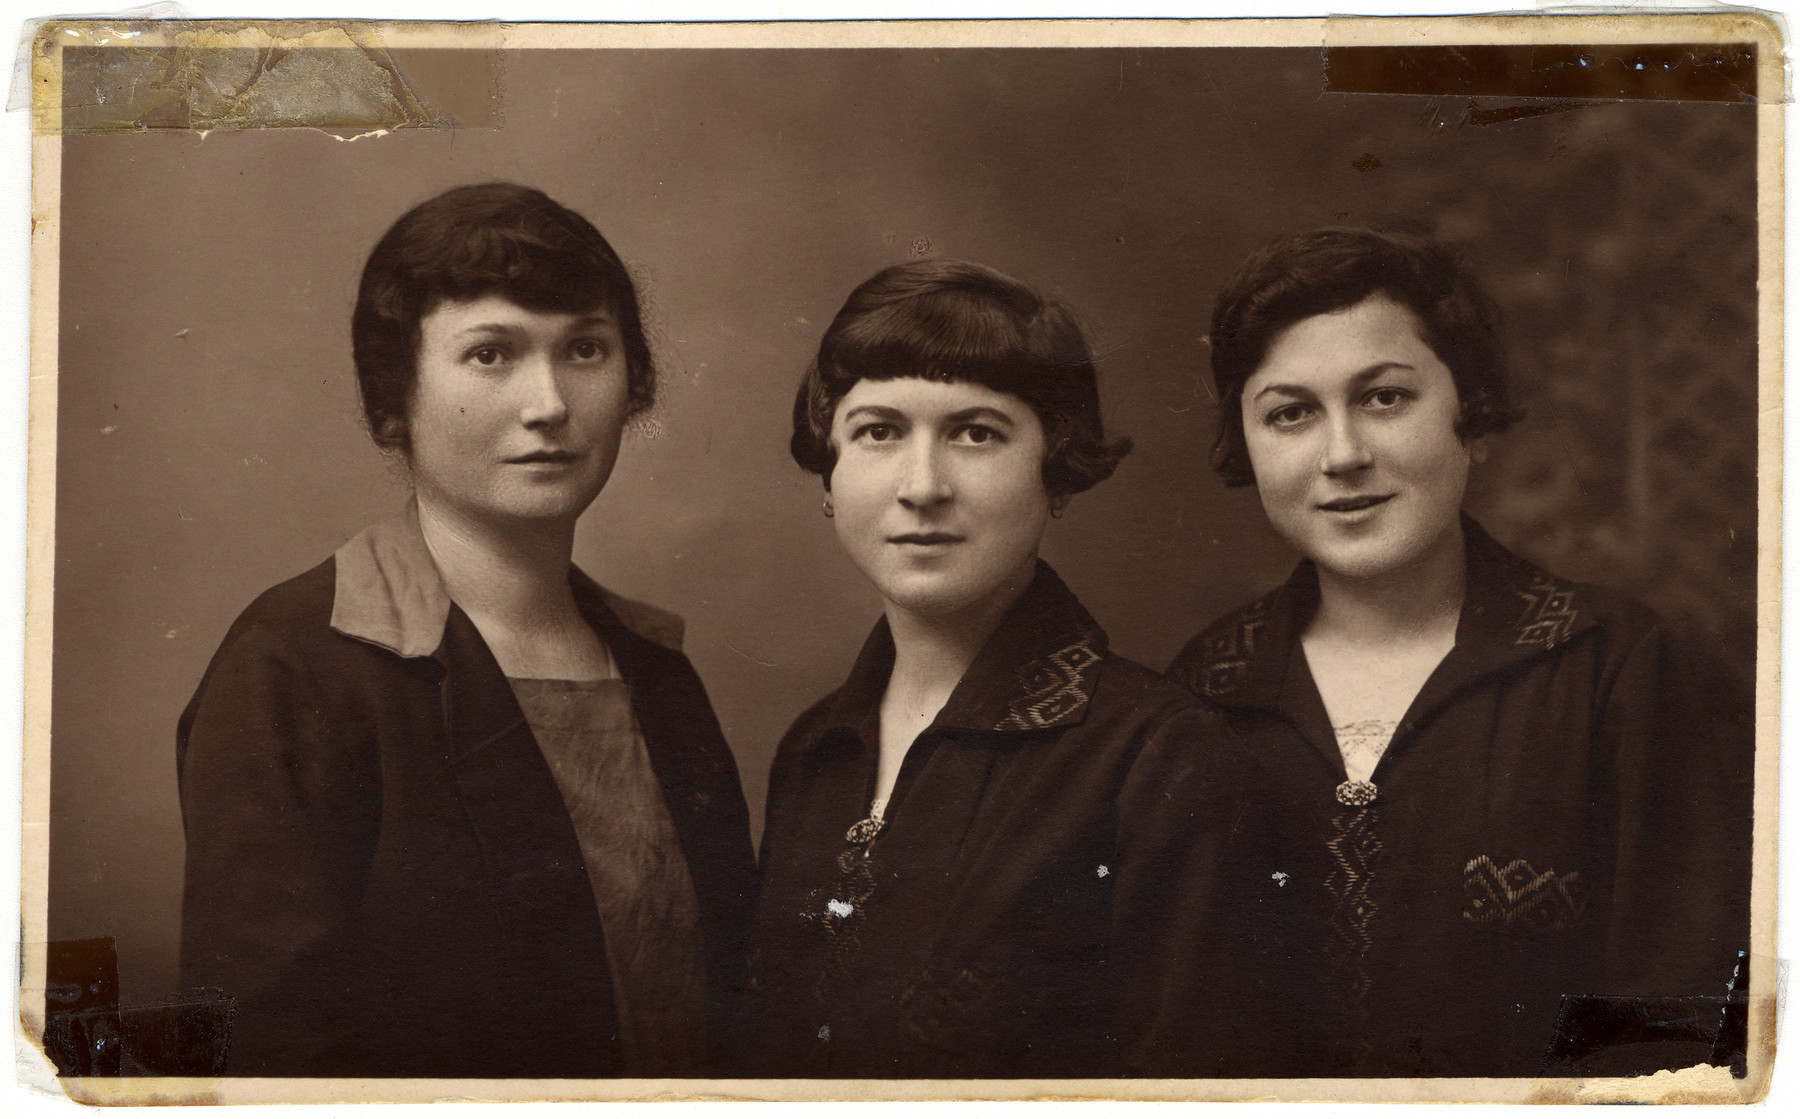 Studio portrait of three of the Rosenthal sisters including Rywka (the donor's mother).